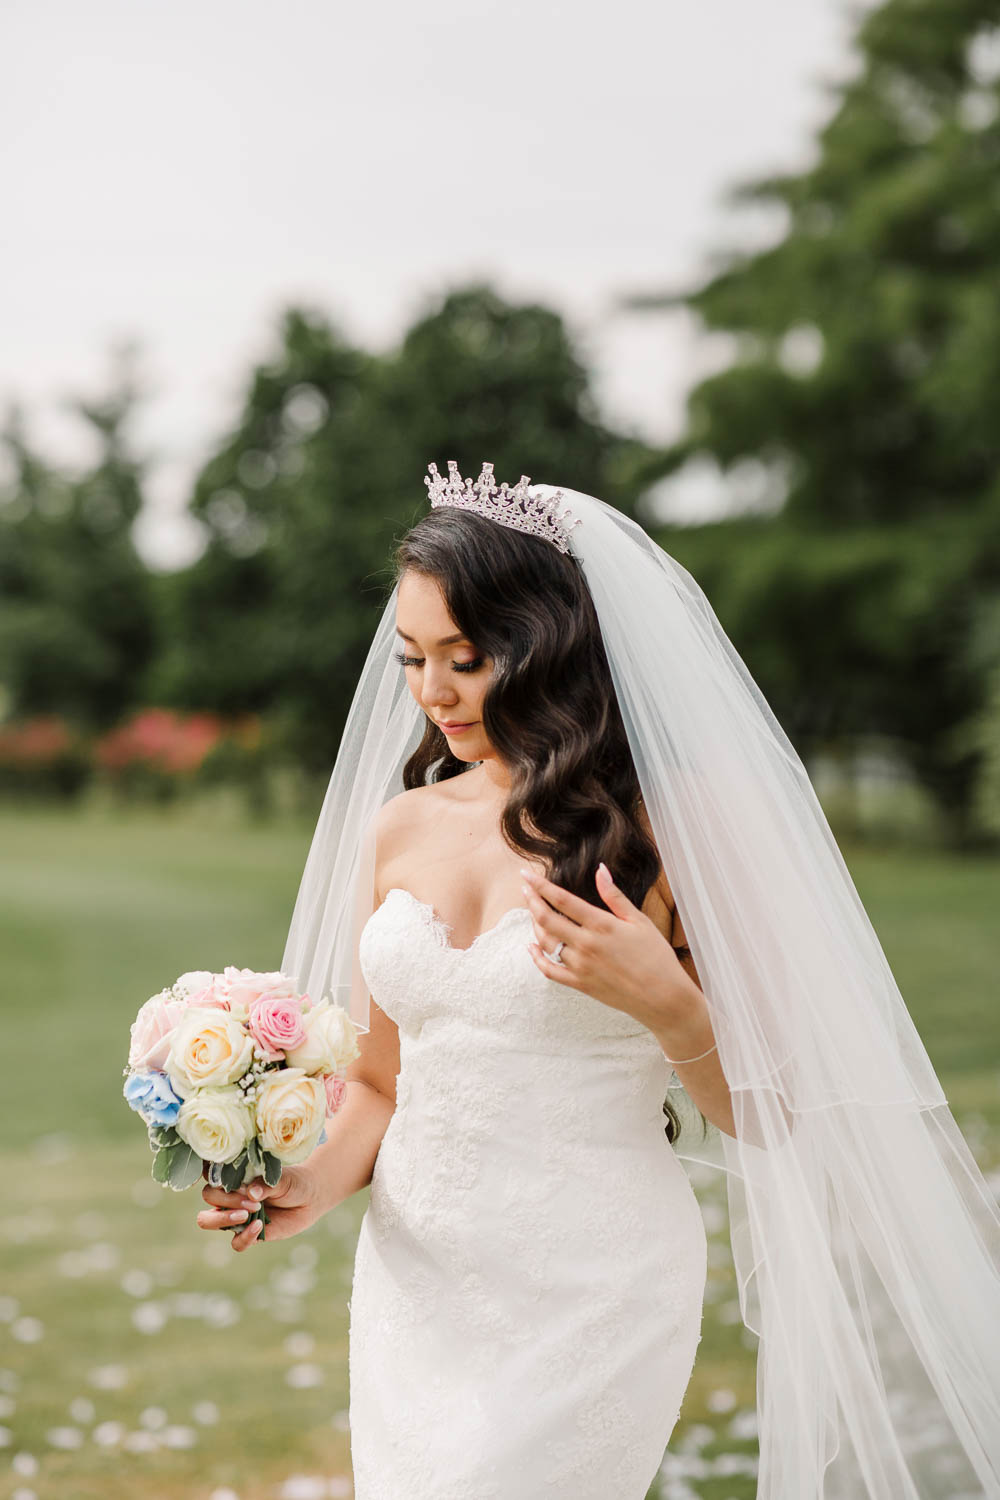 Bride Bridal Fishtail Dress Gown Fit & Flare Tiara Veil Bouquet Rose Hydrangea Brewerstreet Farmhouse Wedding Danielle Smith Photography